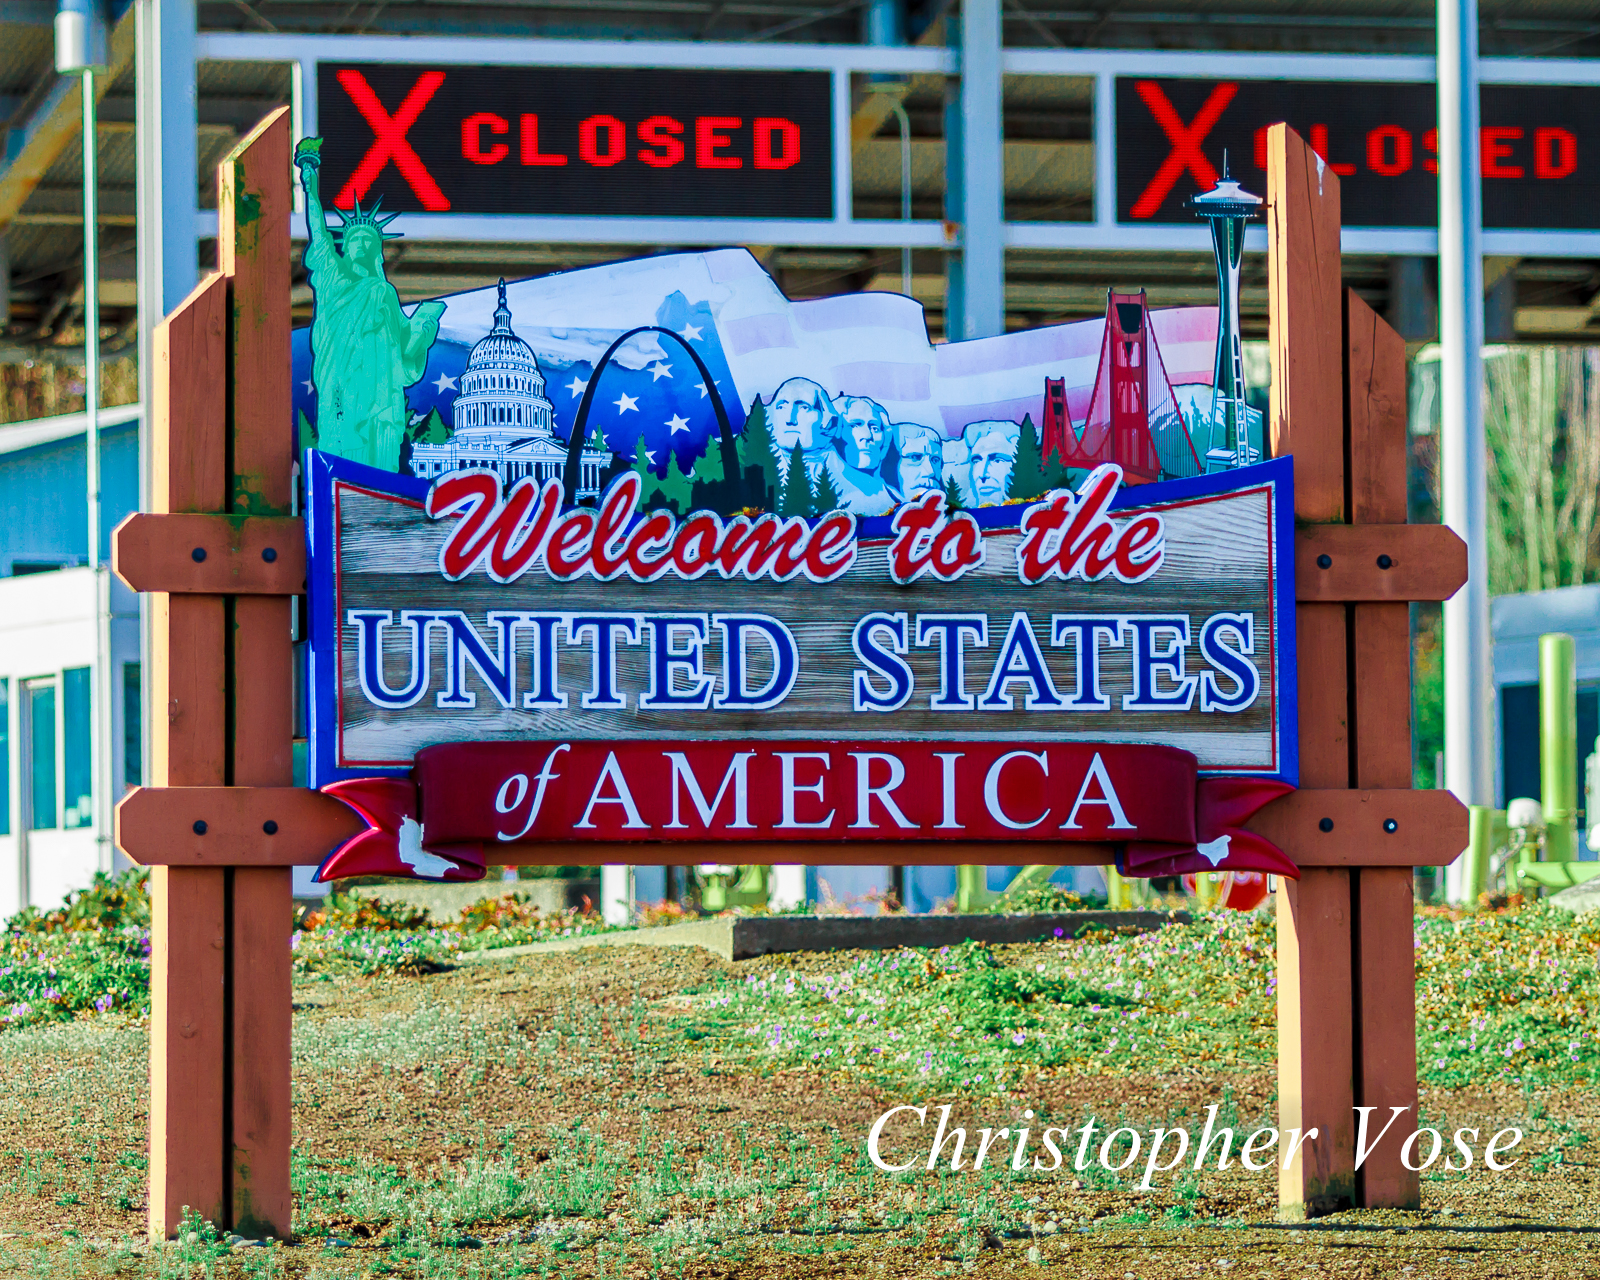 2014-09-20 Welcome to the United States of America.jpg